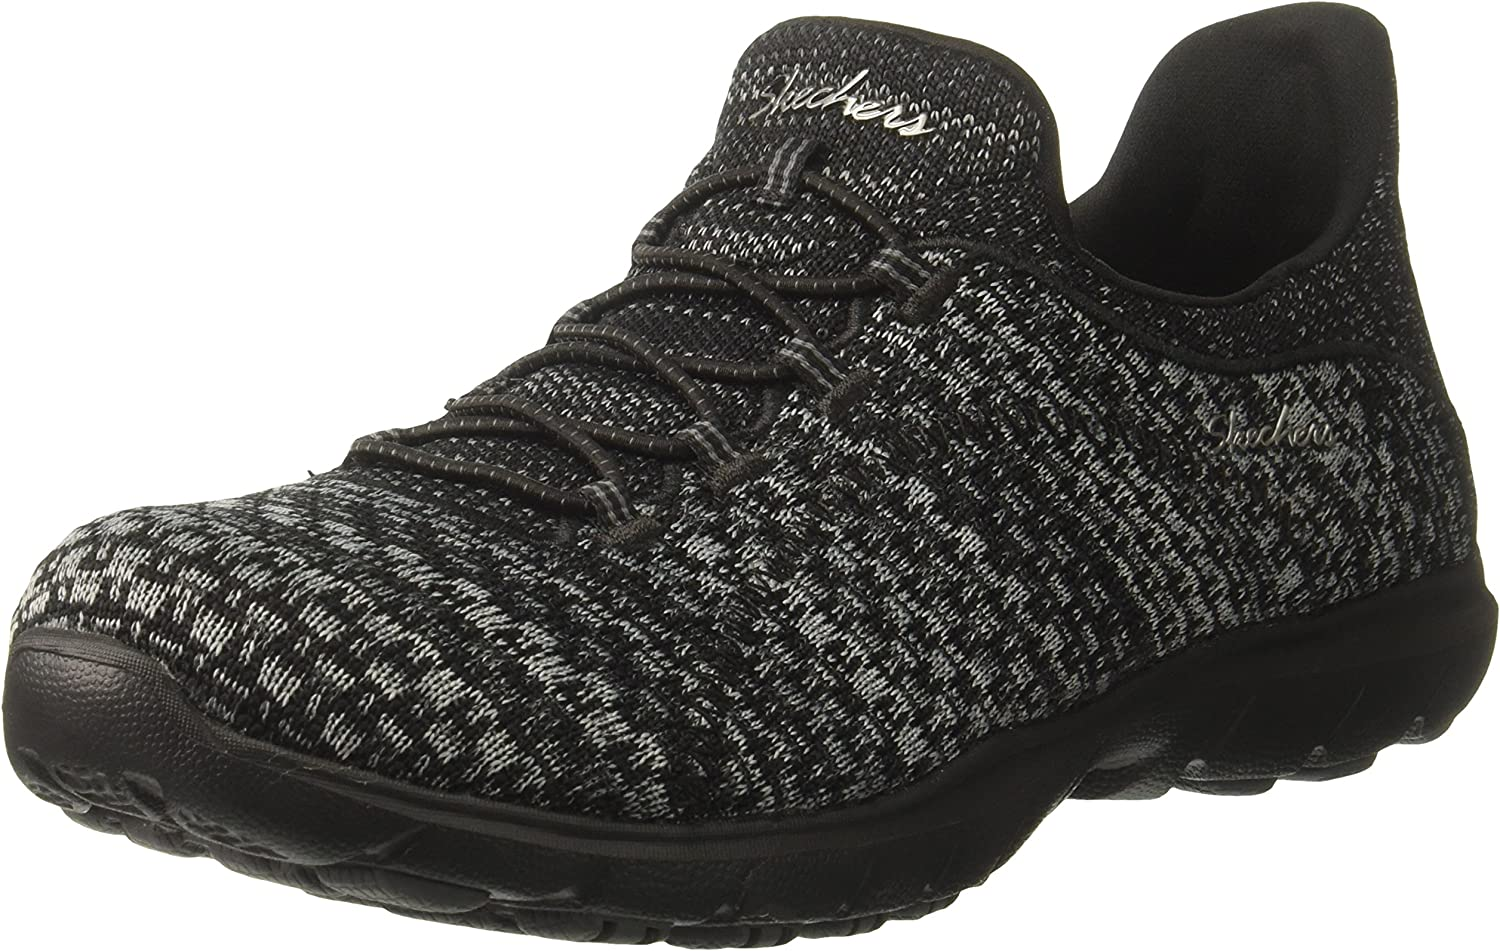 Skechers Sport Women's Dreamstep-Enliven Fashion